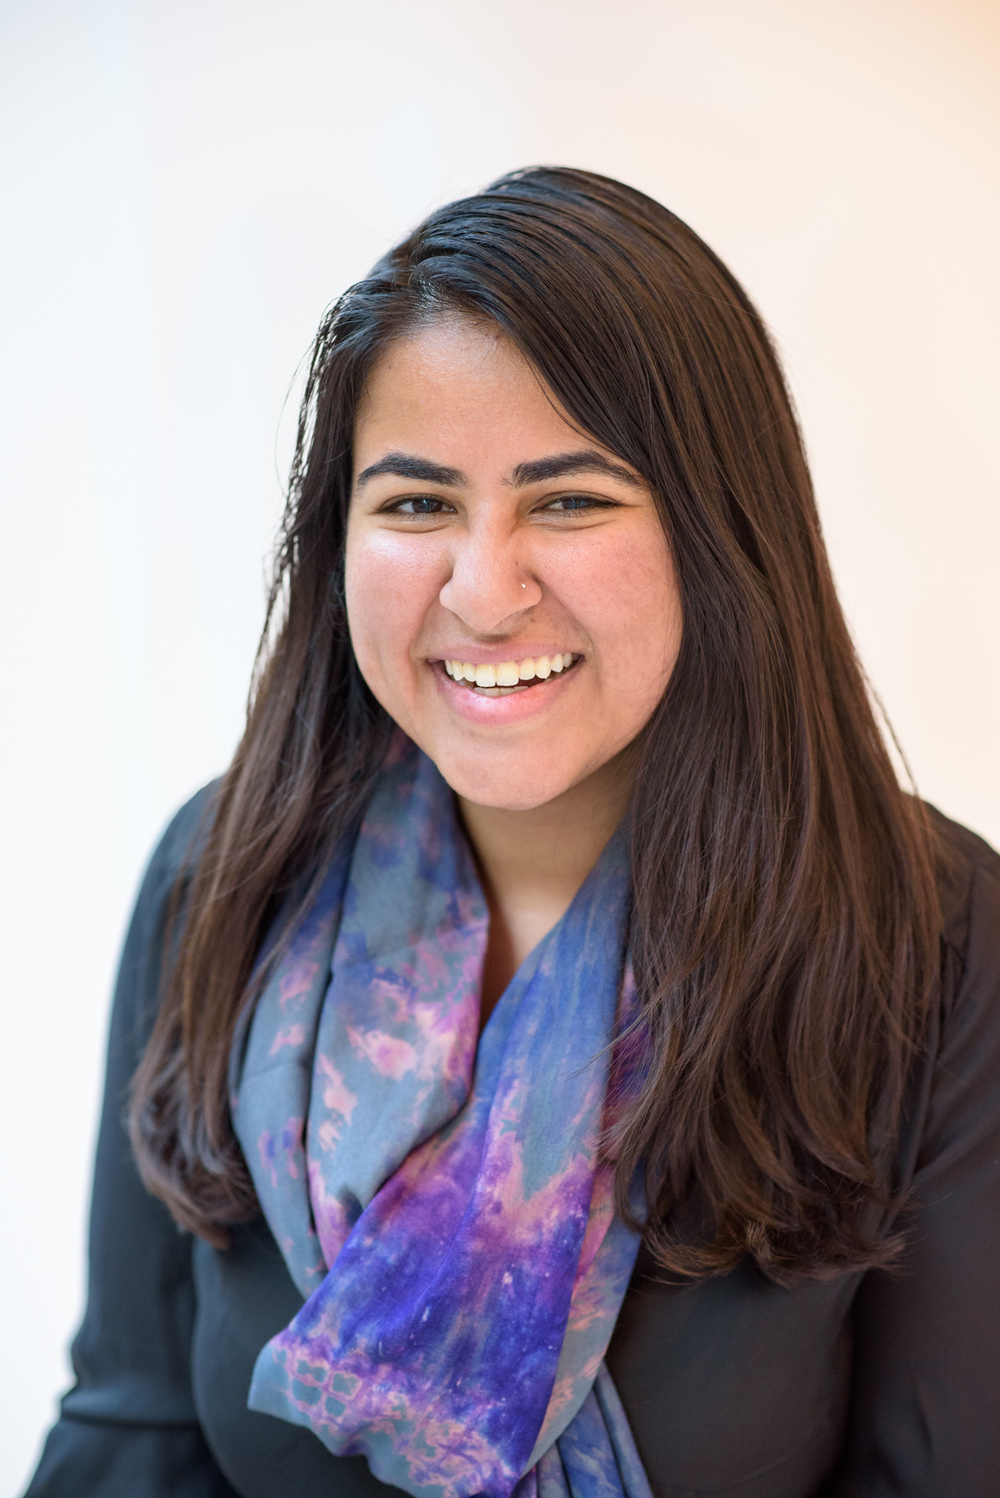 Megan Singh Sidhu, Director of Philanthropic Initiatives